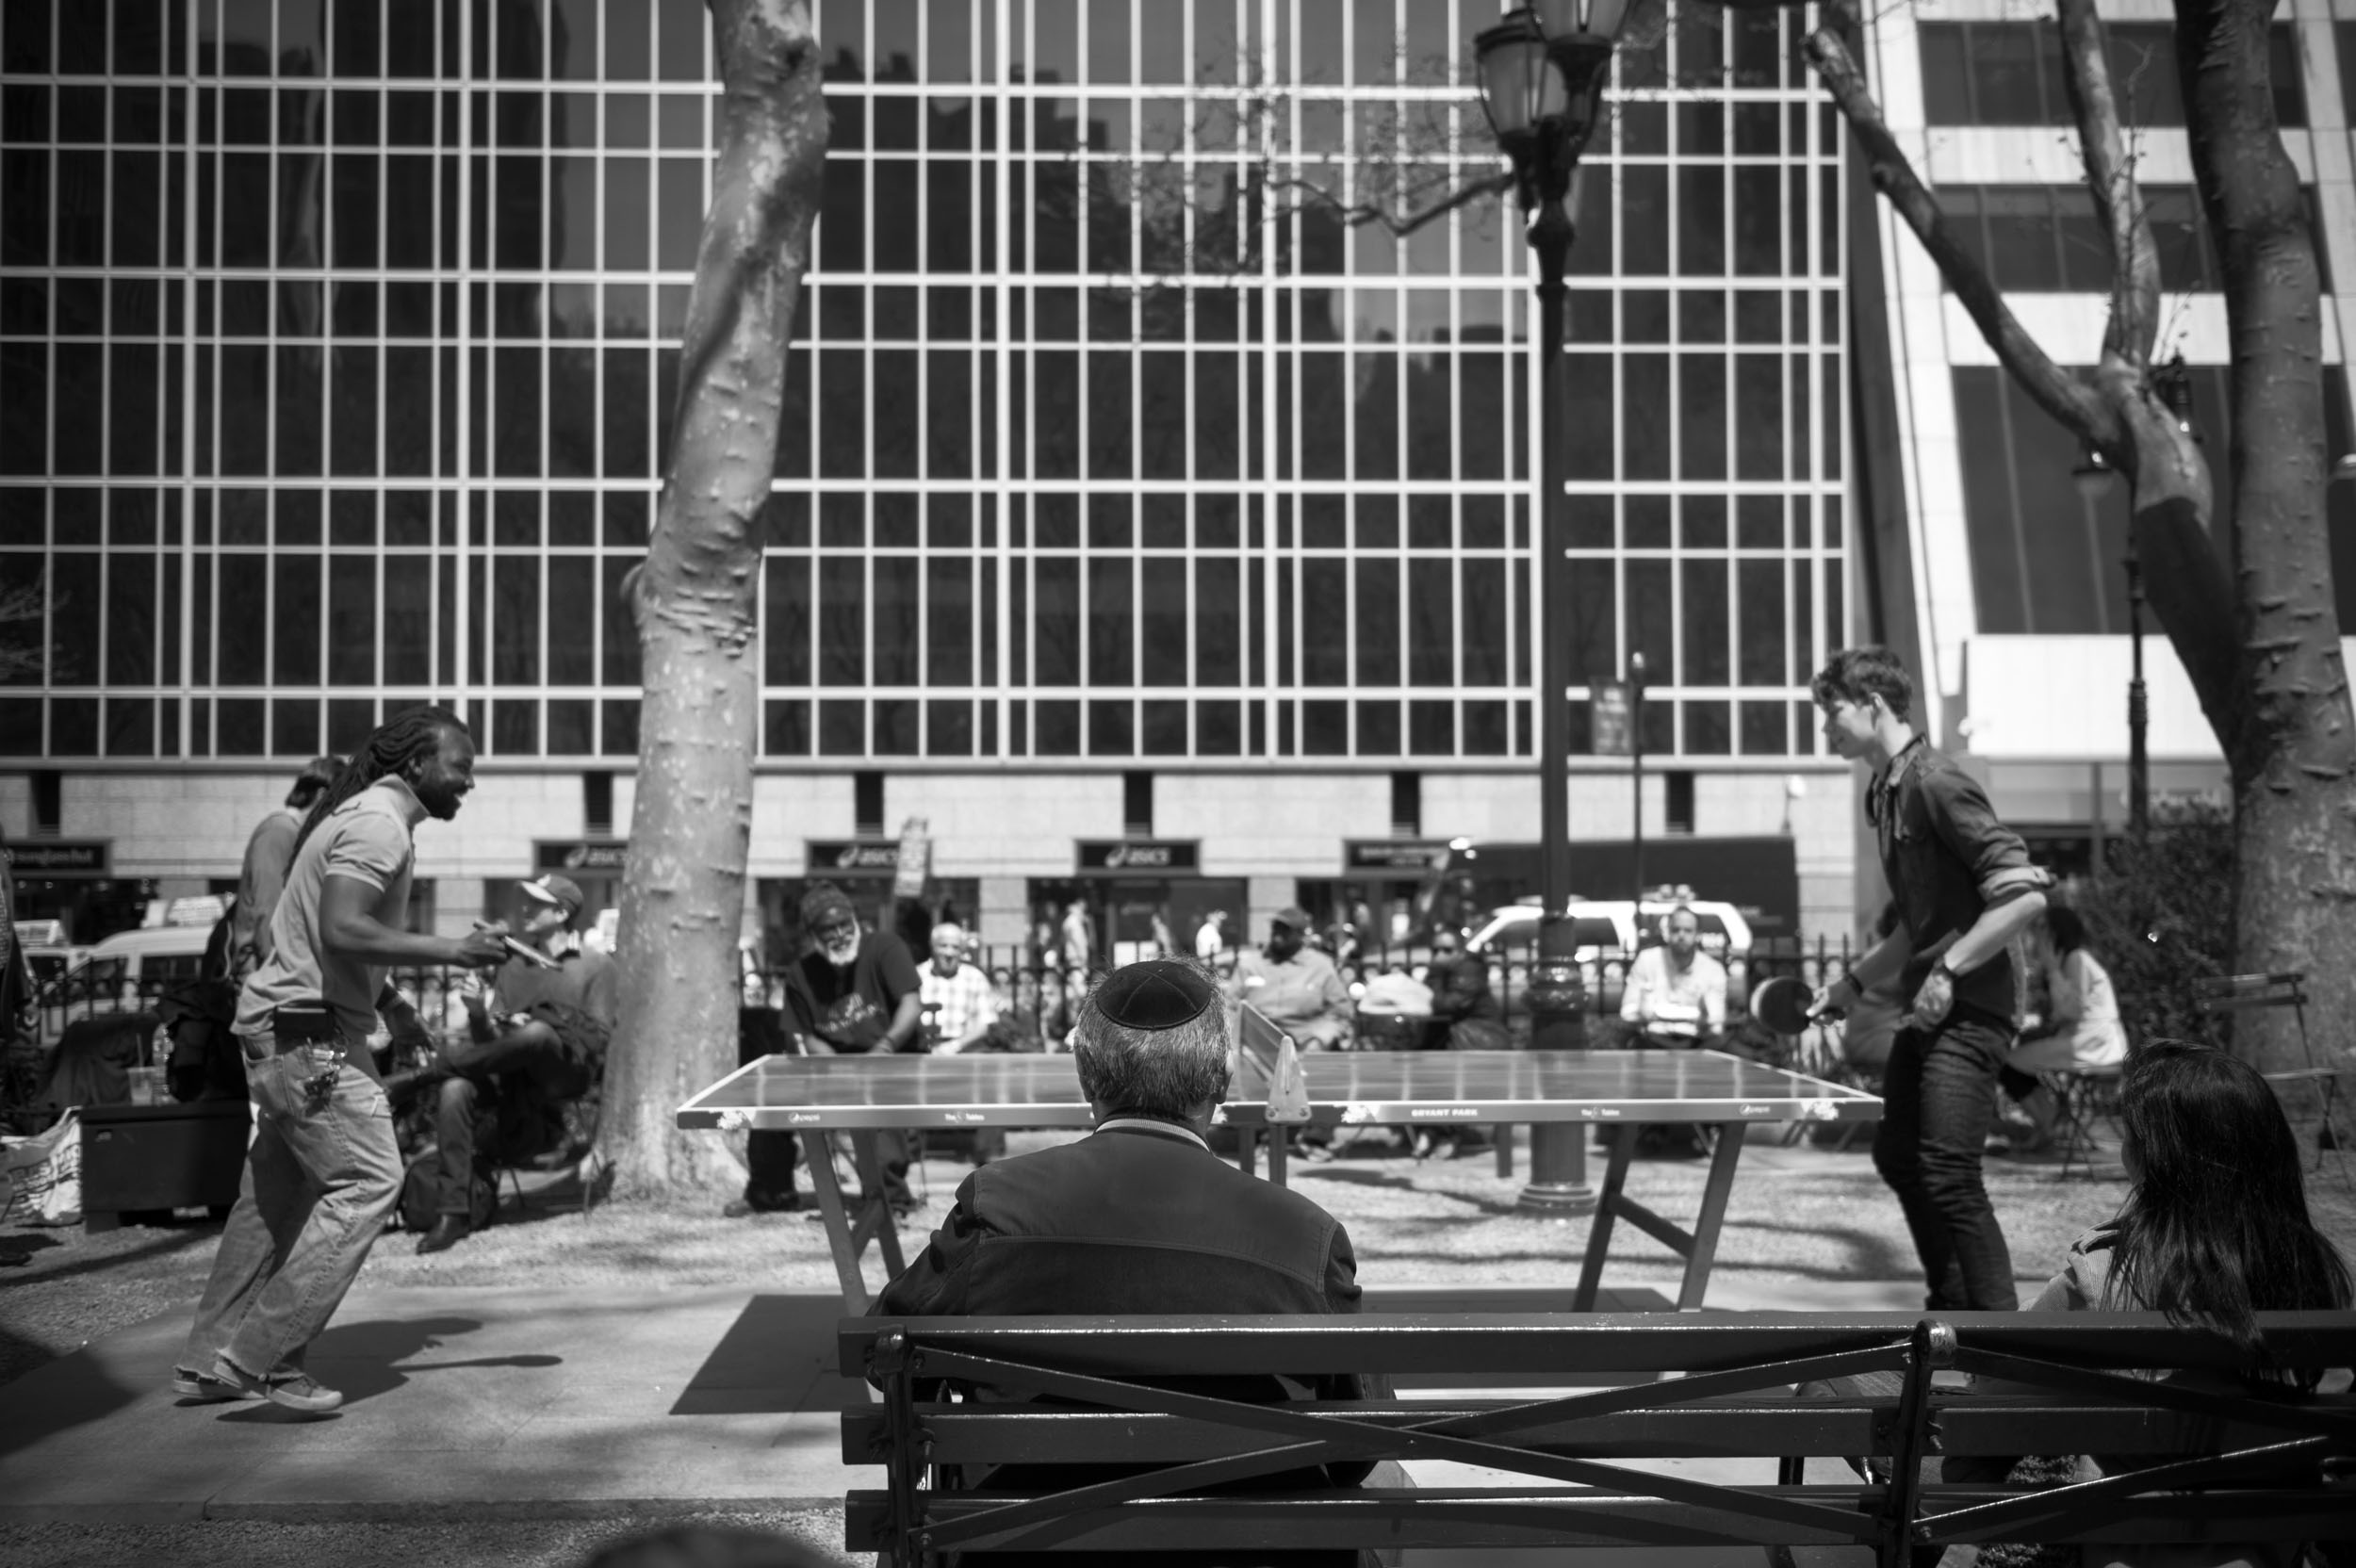 pam_korman_photography-ping-pong_diplomacy-bryant_park_new_york_city-04.jpg